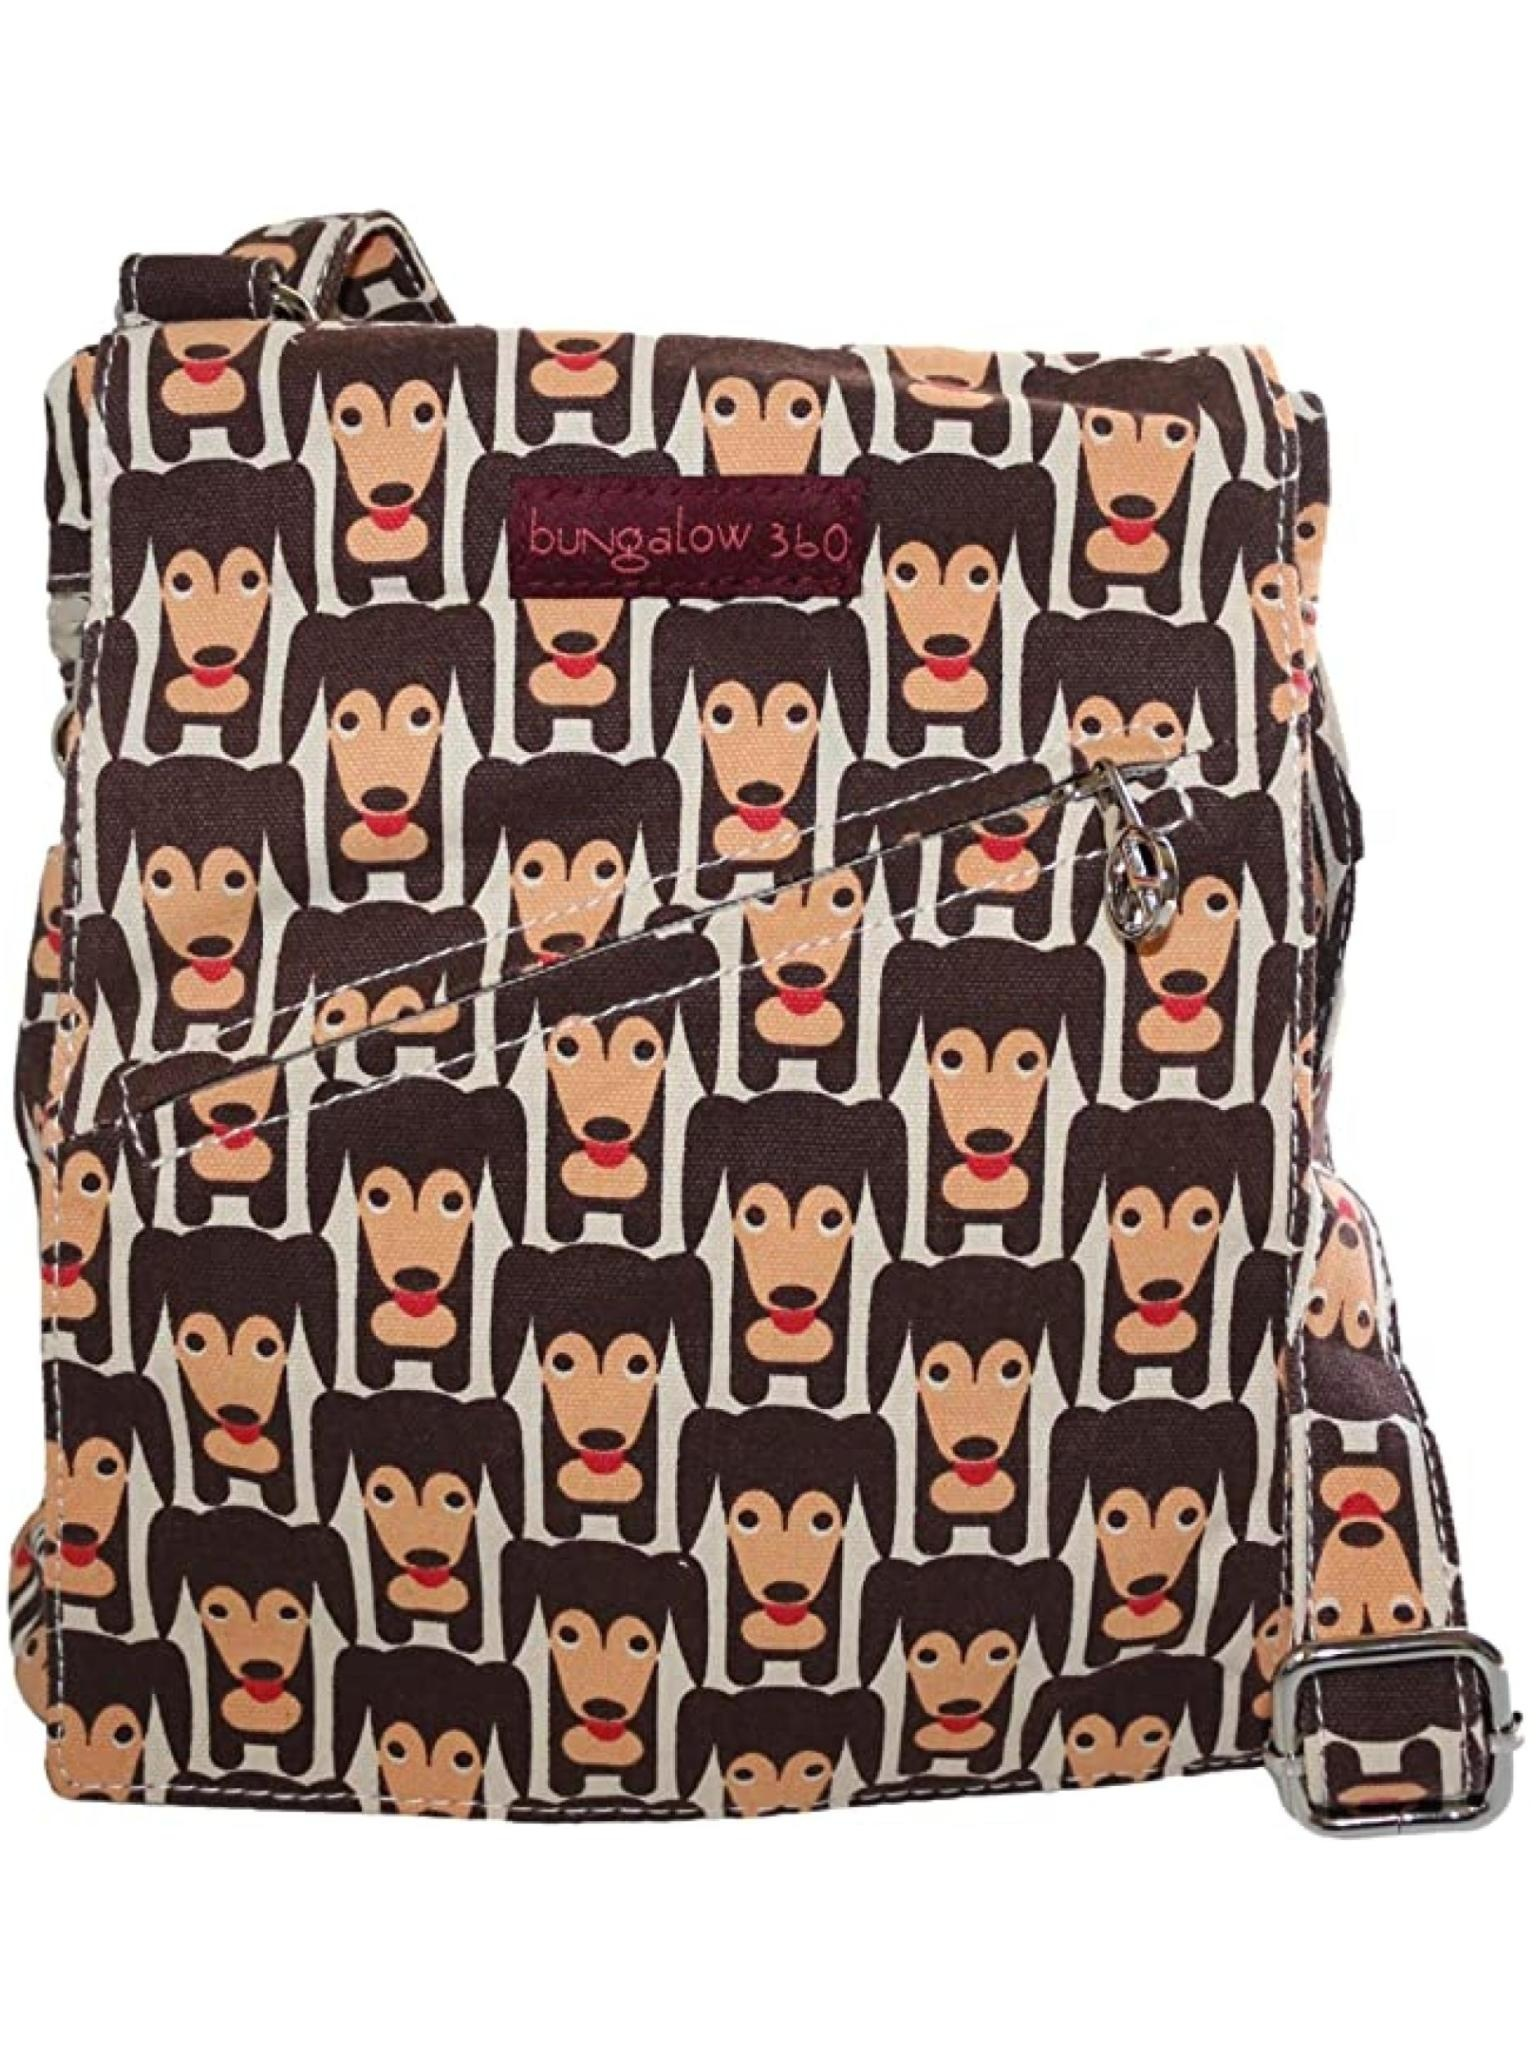 Bungalow 360 Small Messenger Happy Dog